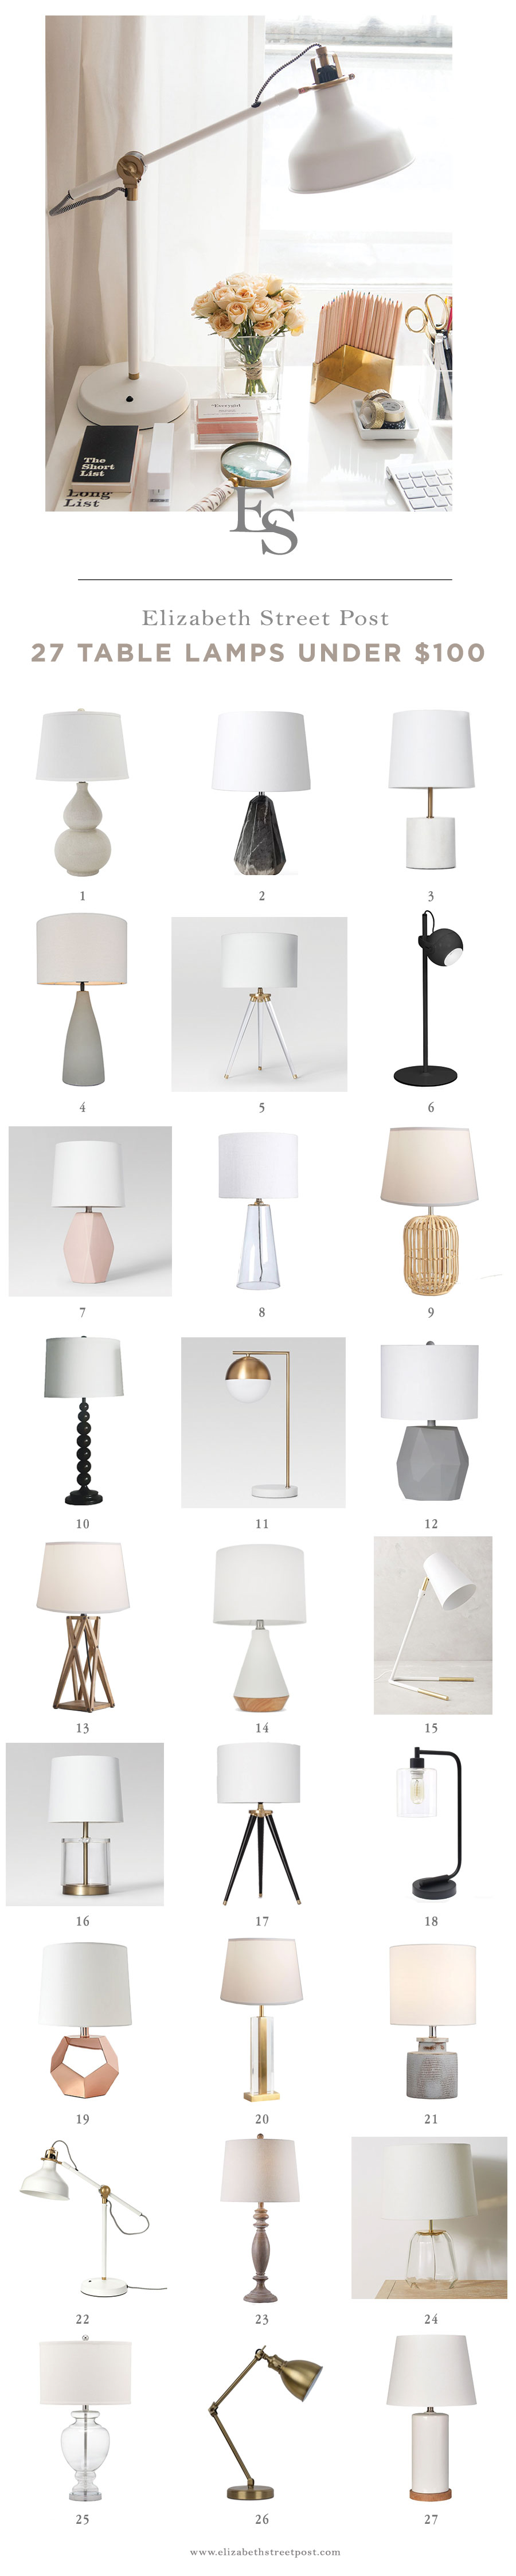 27 chic table lamps under 100 that id put in my own home 1 white patterned gourd lamp aloadofball Gallery